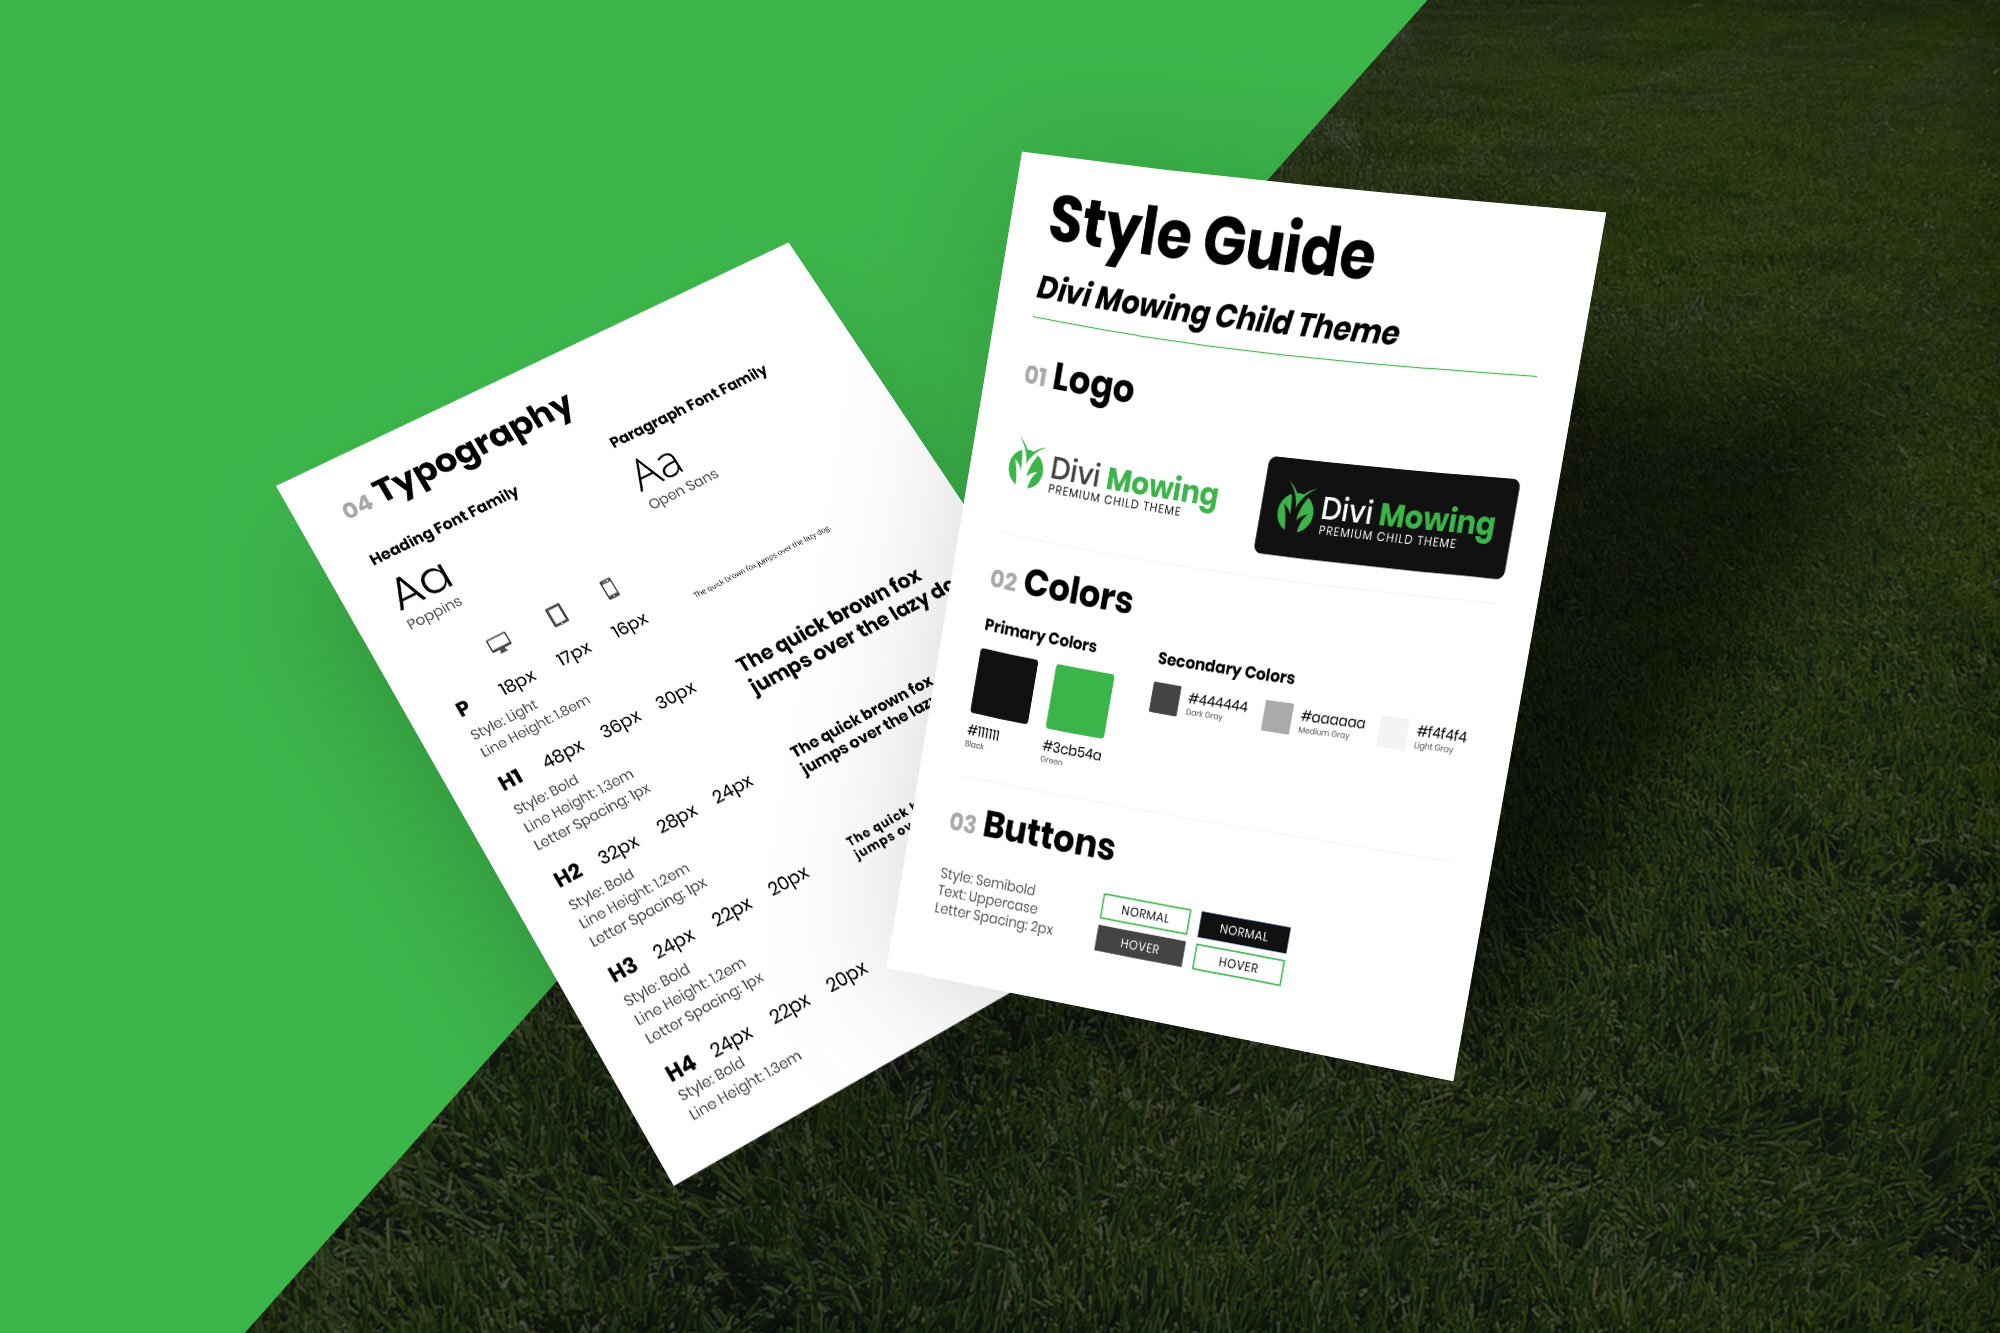 Divi Mowing Child Theme Style Guide Mockup